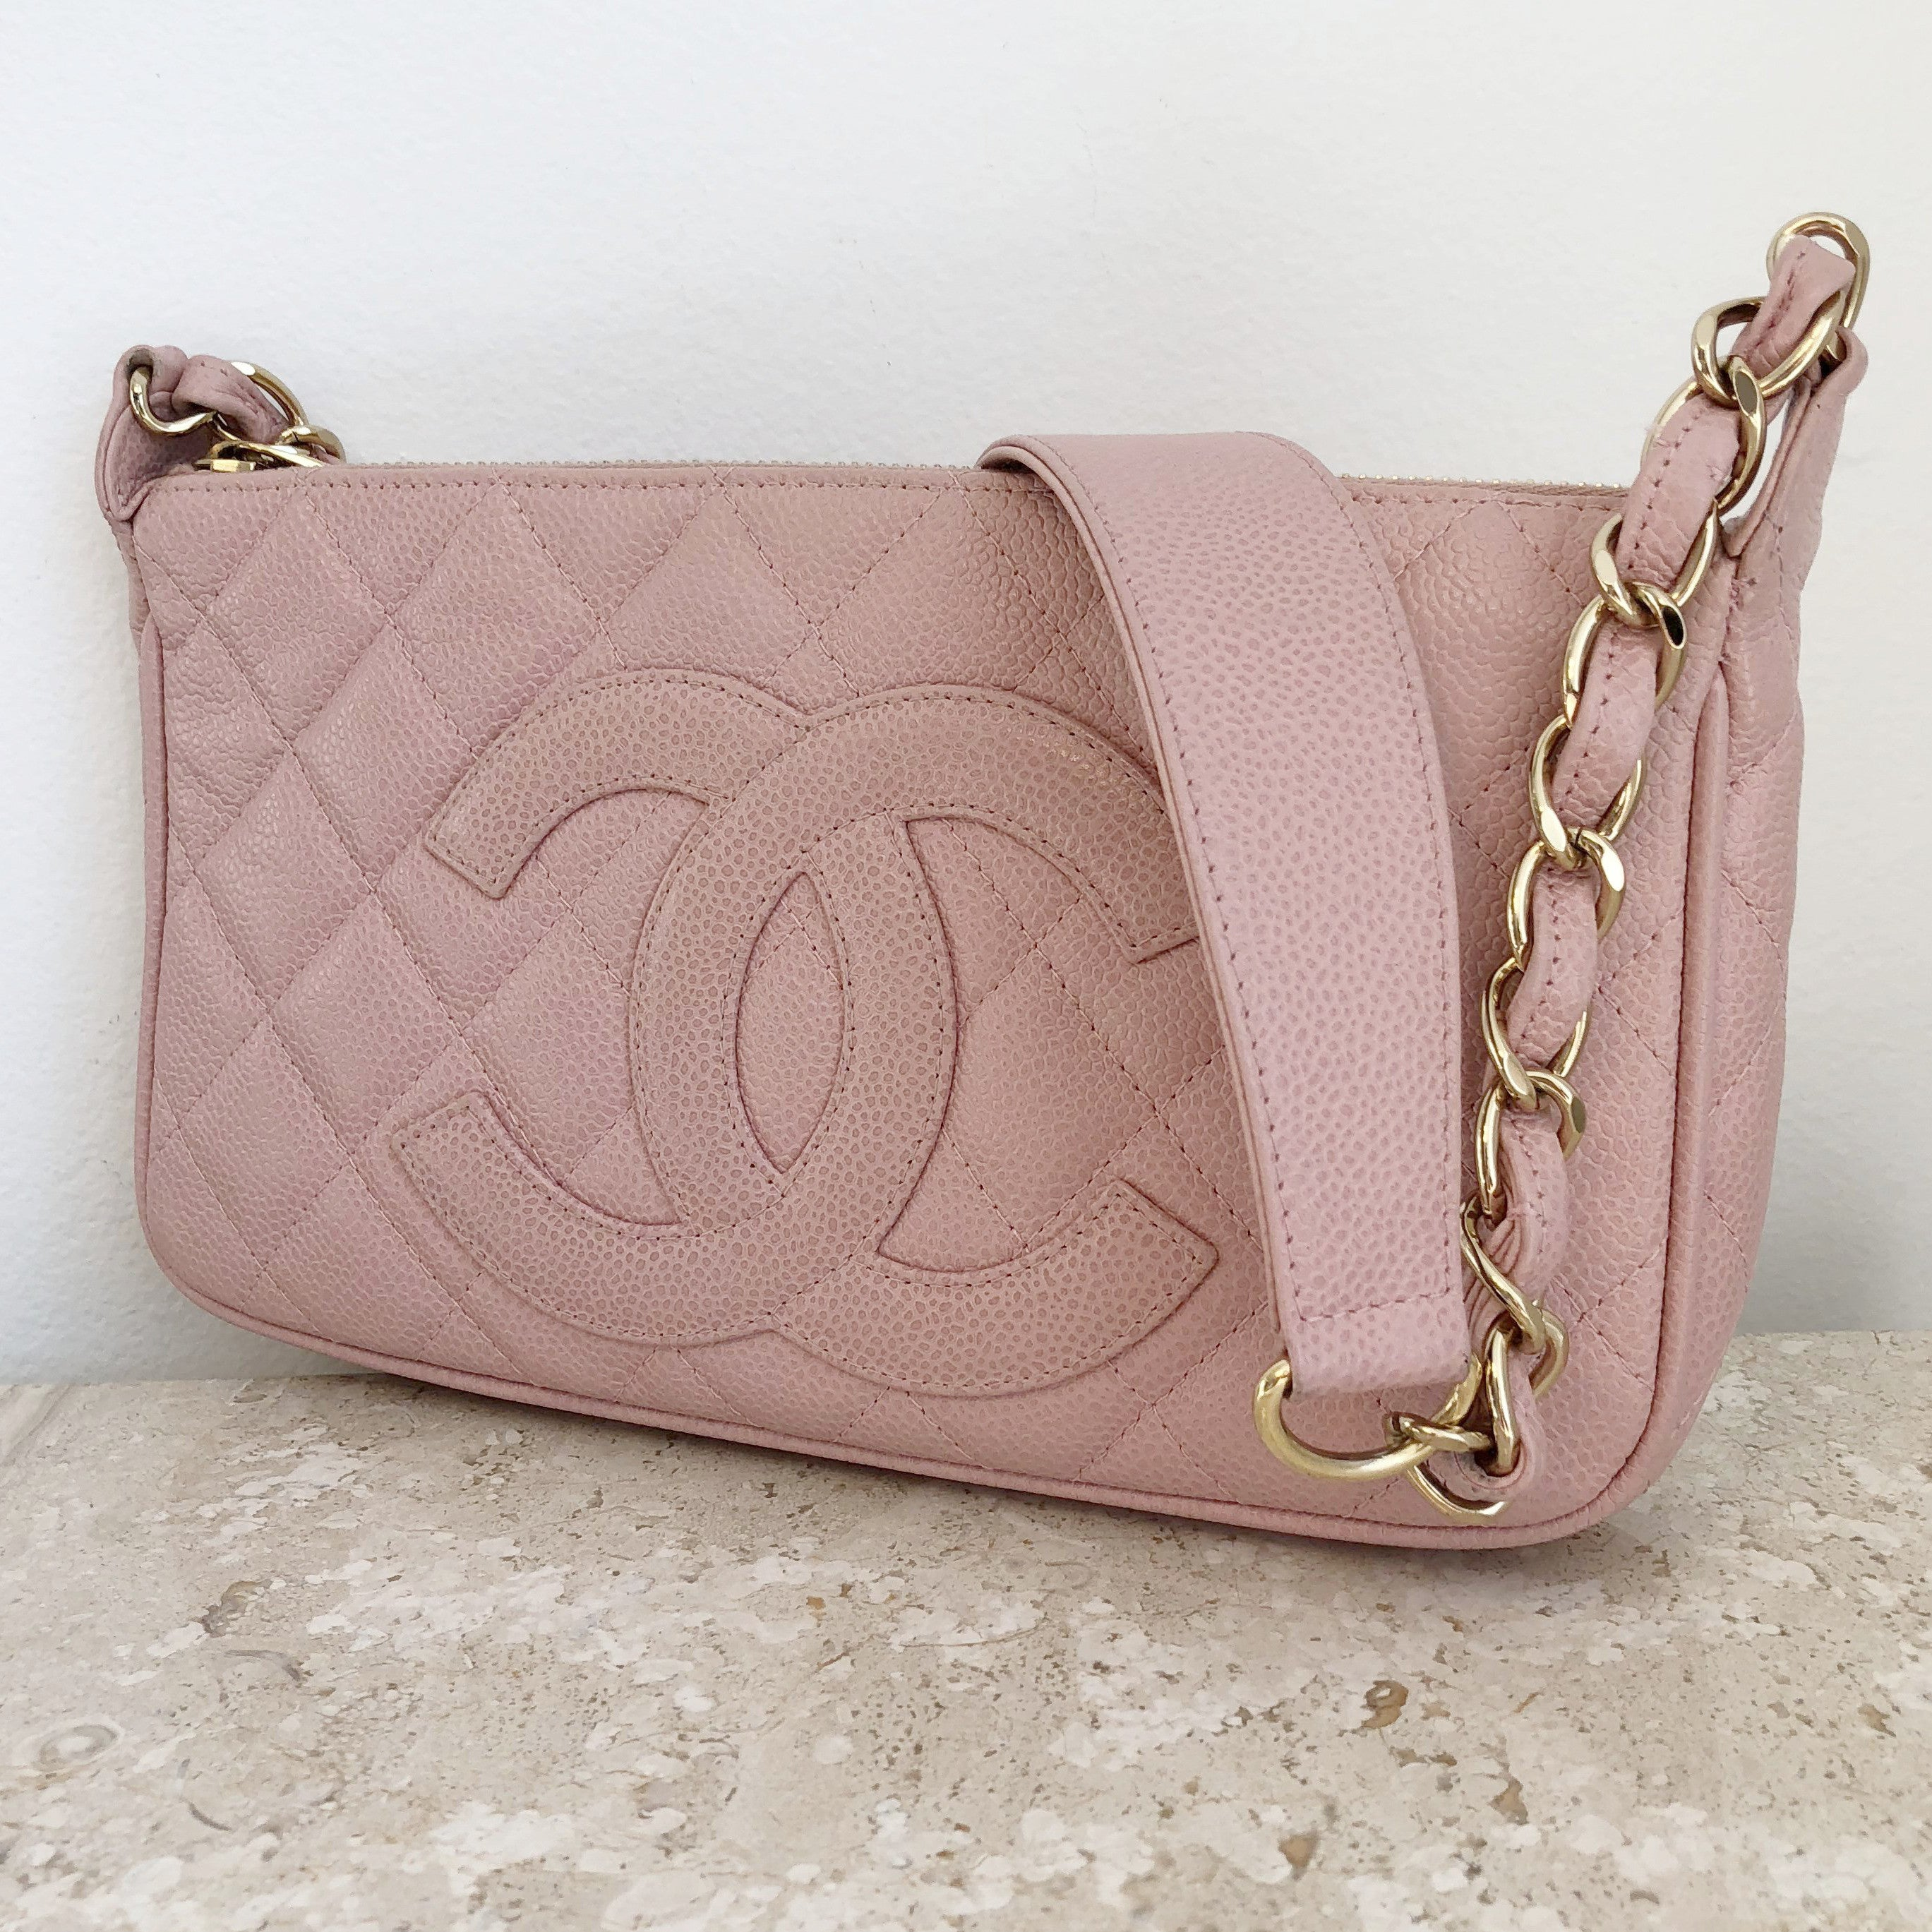 Authentic CHANEL Timeless Caviar Shoulder Bag